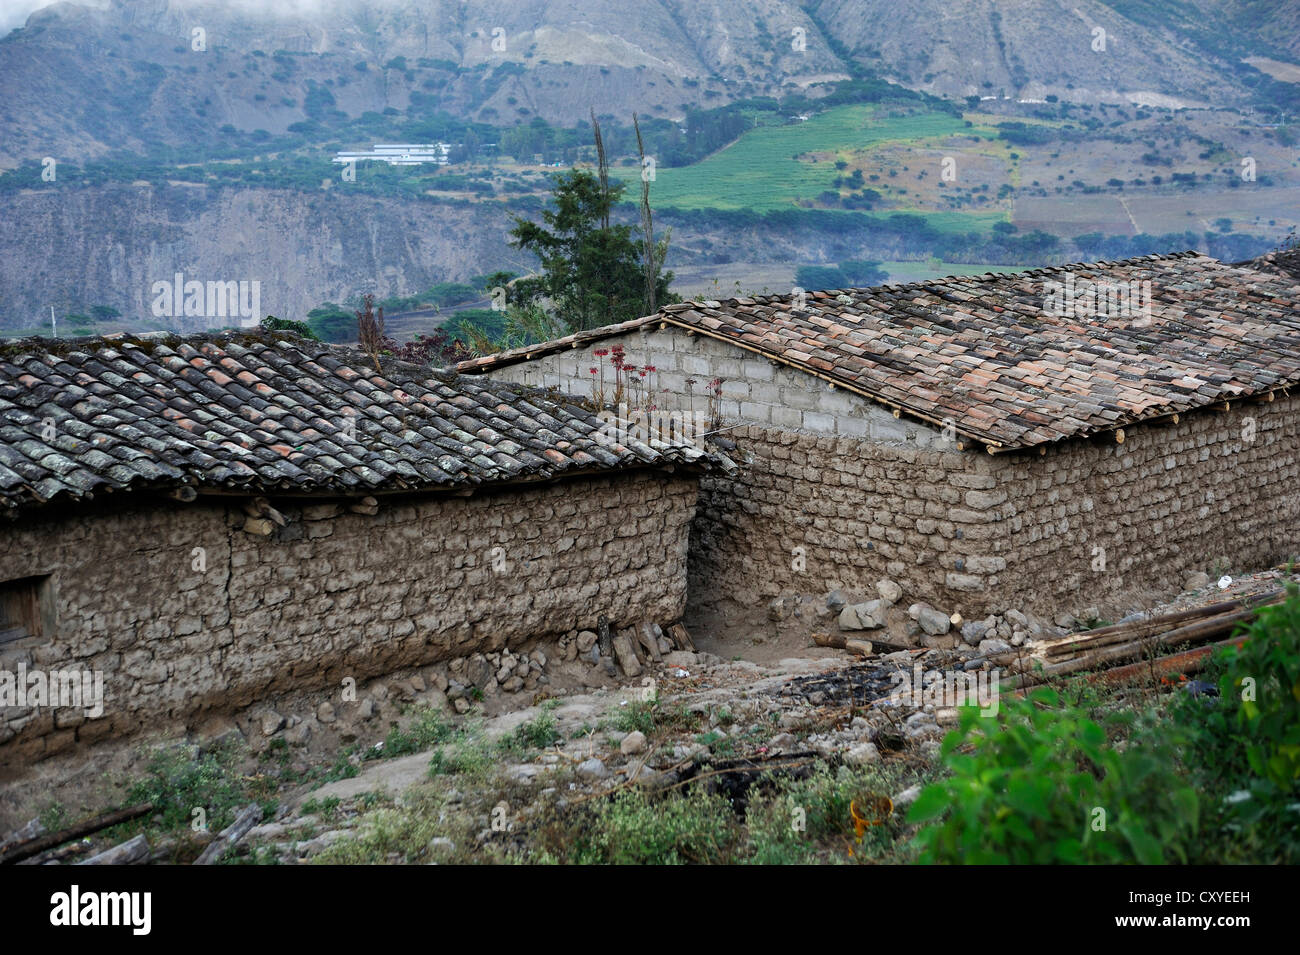 Houses in traditional architectural style, adobe bricks, African-Ecuadorian community of La Loma, Paroquia Concepcion - Stock Image